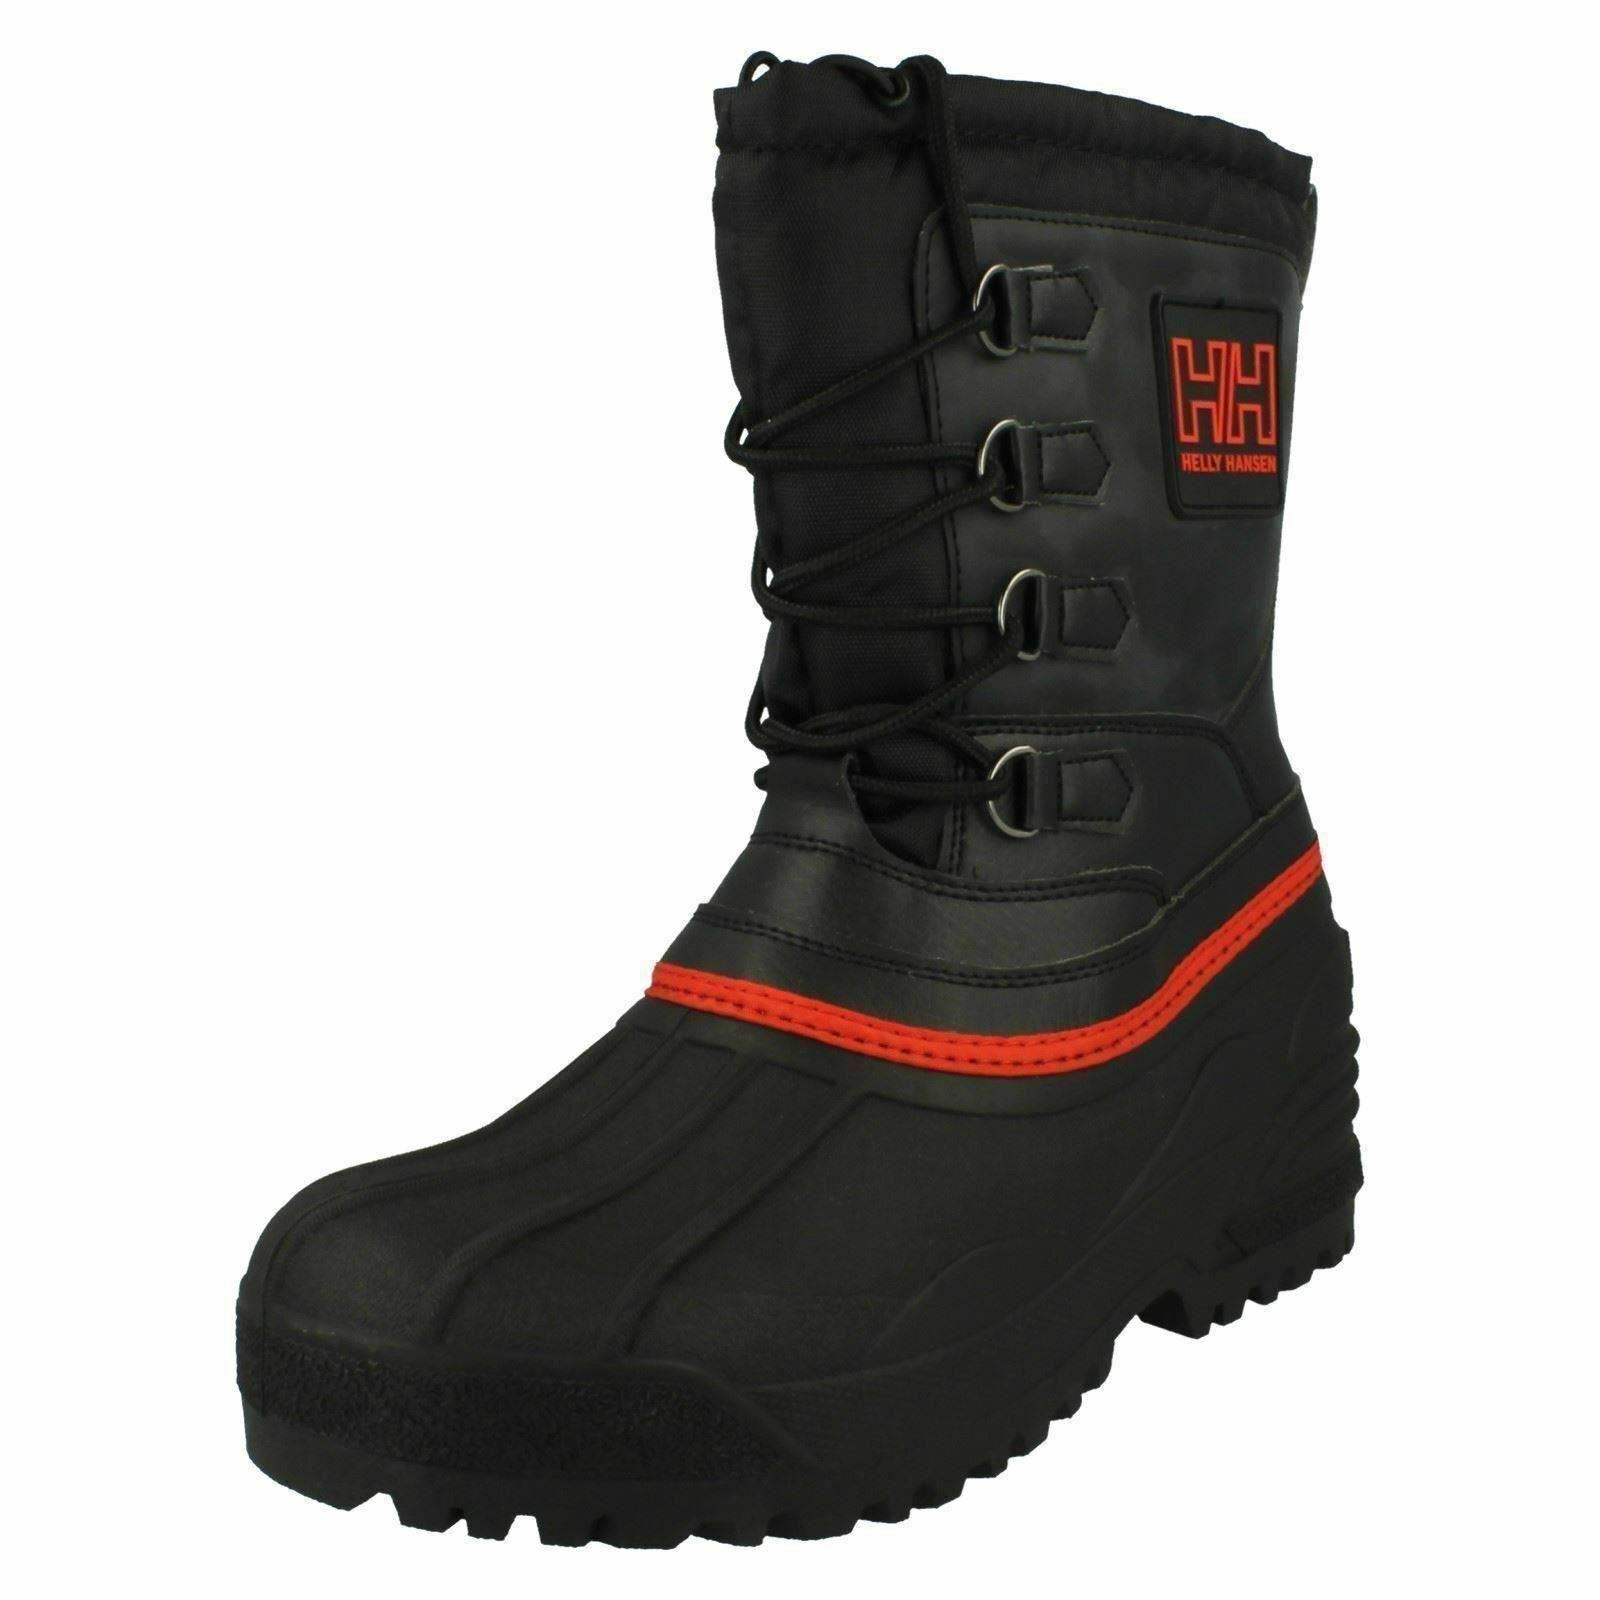 Mens Norefjell ap mid black synthetic textile laceup boot by Helly Hansen